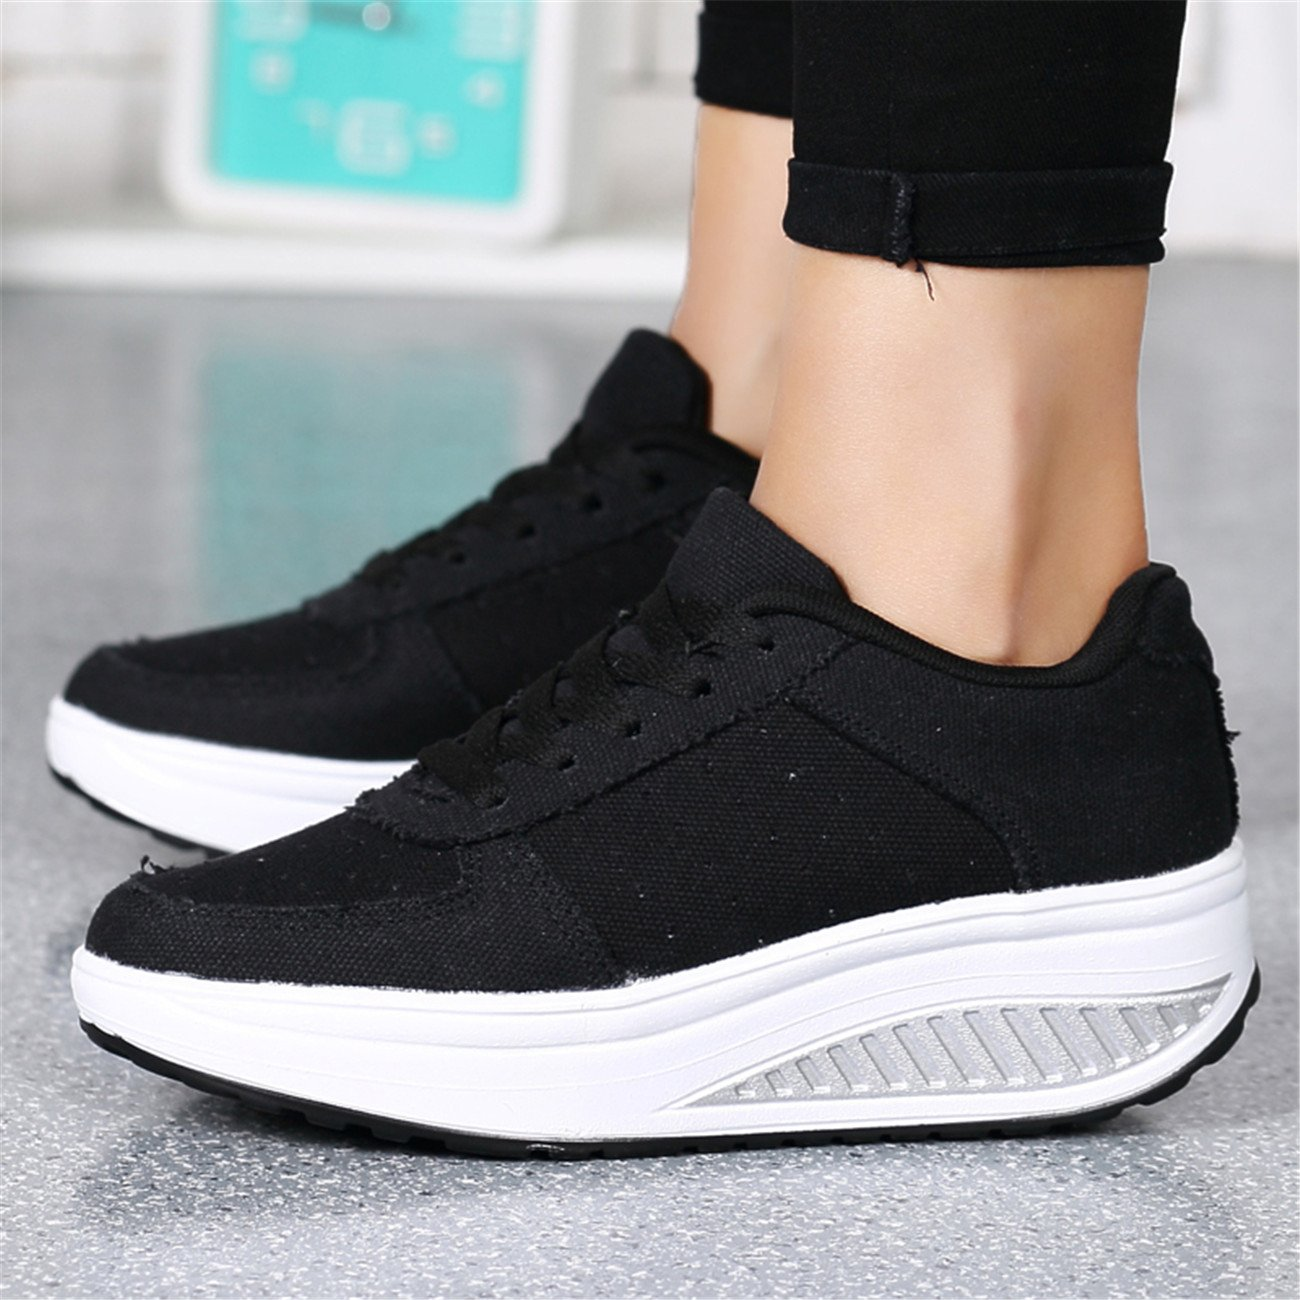 TORMROAD TM Womens Athletic Canvas Walking Shoe Casual Lace up Toning Sneaker Fitness Shoes